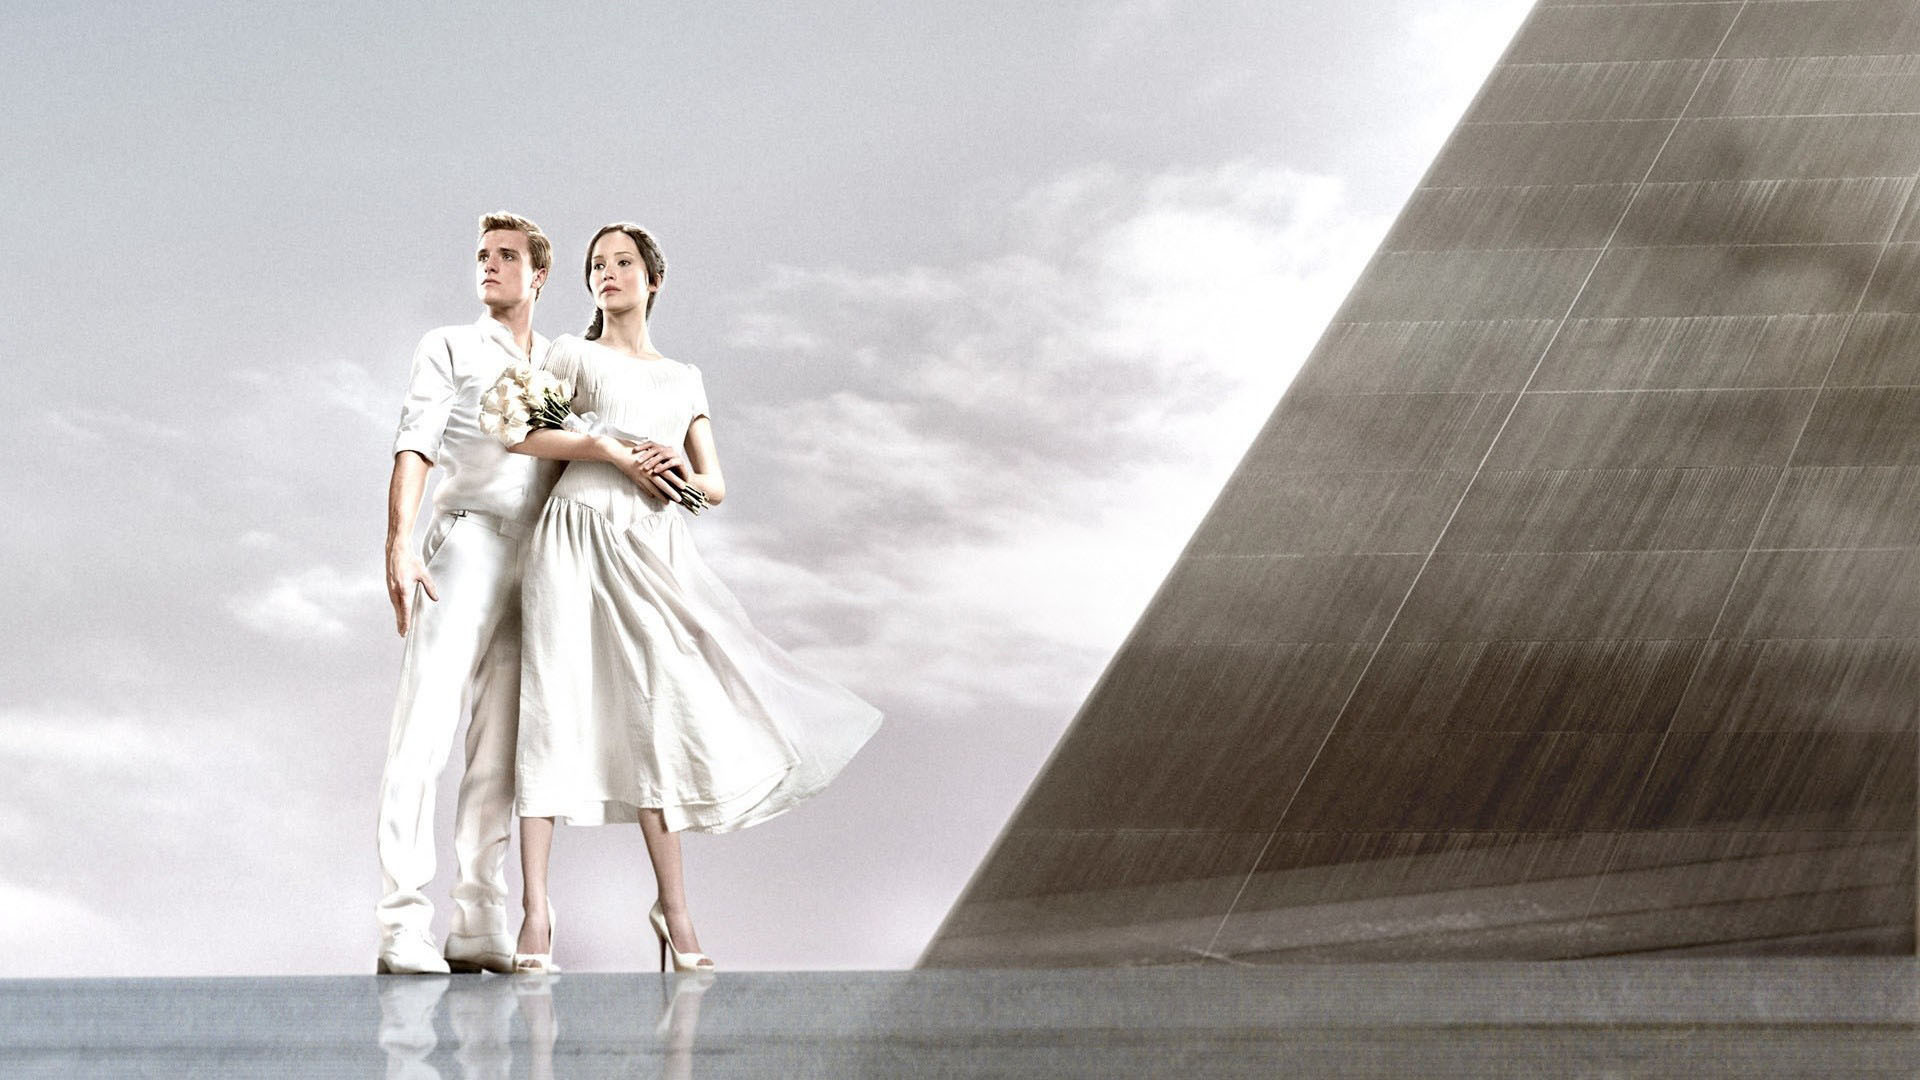 1920x1080 The Hunger Games Catching Fire Couple |  | Full HD 169.